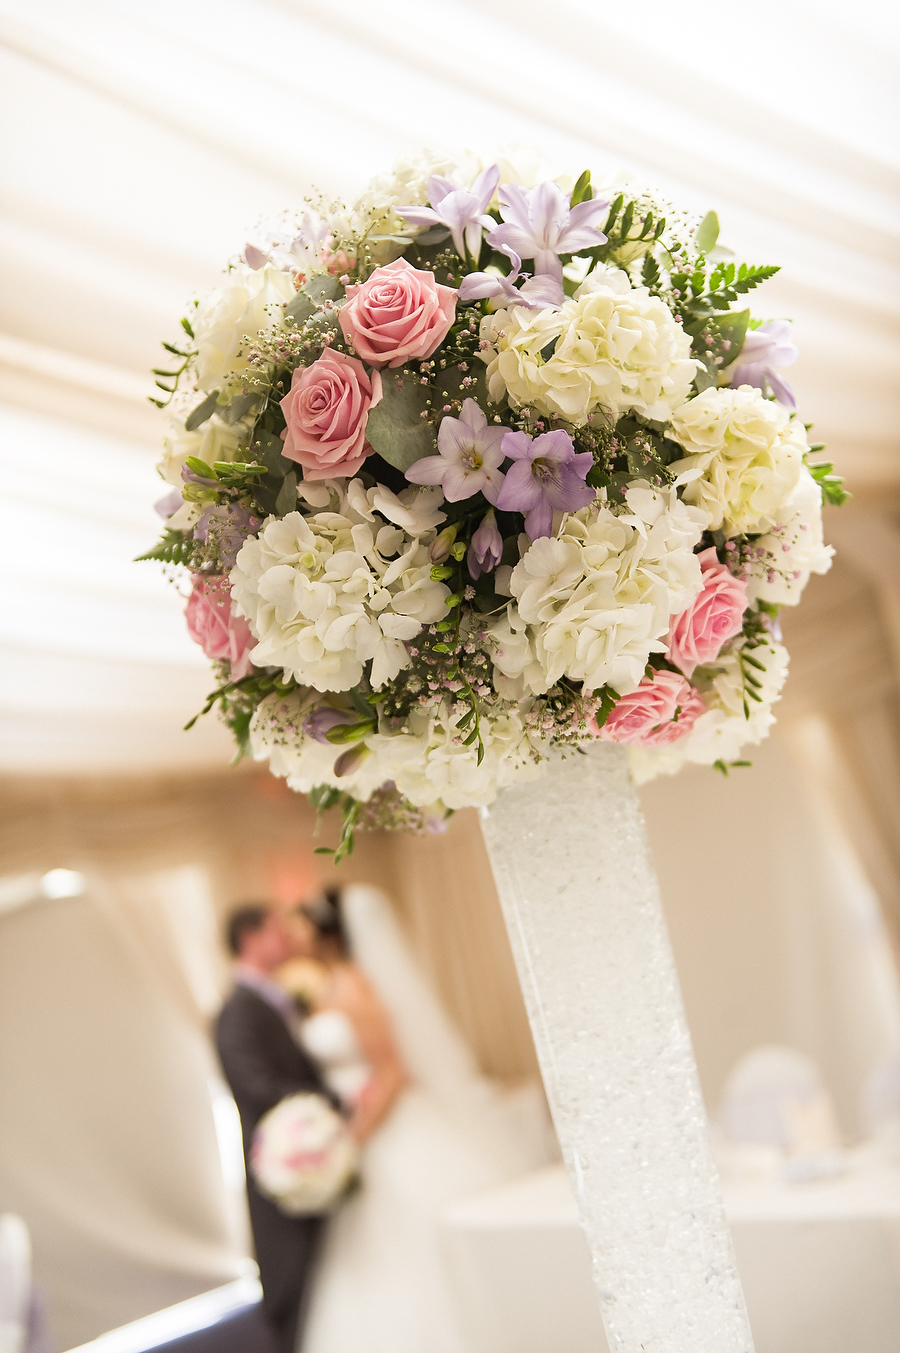 Creative details photographs at Calderfields in Walsall by Cannock Wedding Photographer Barry James